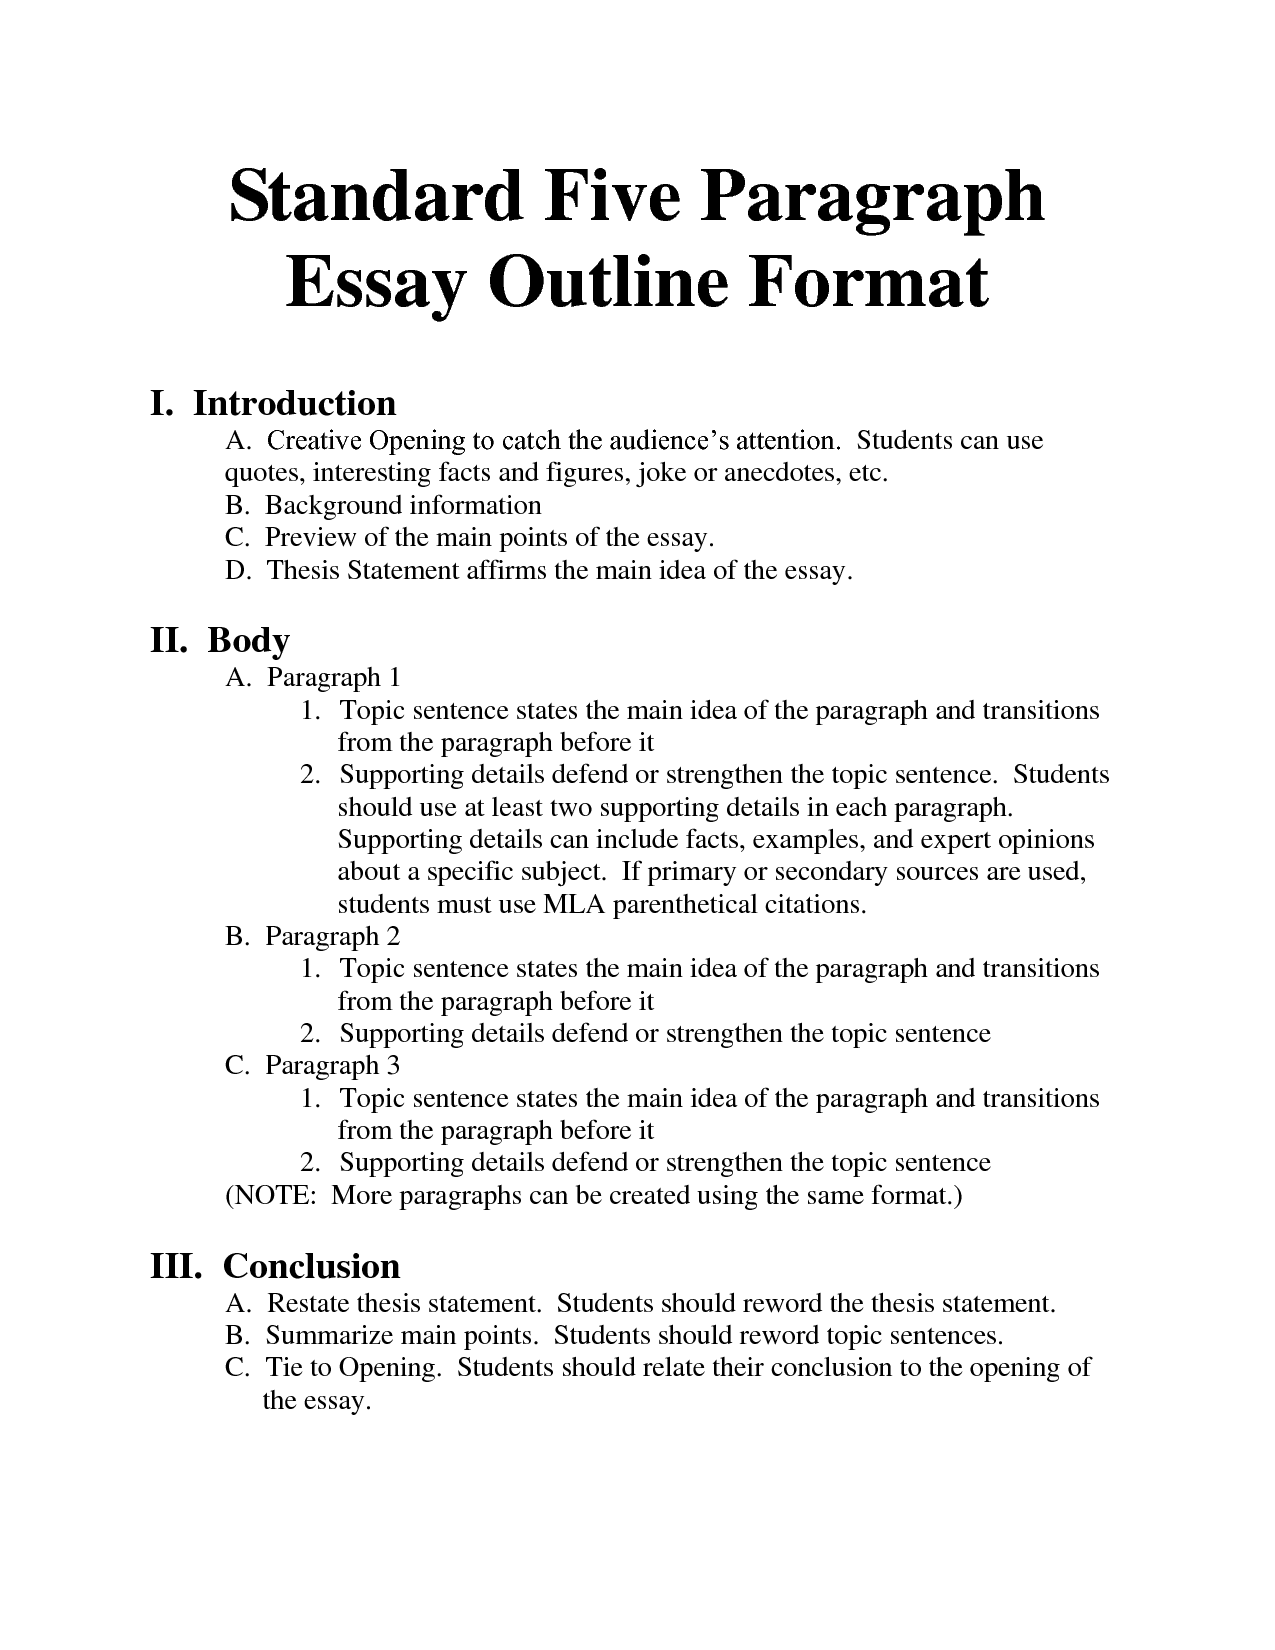 007 Essay Example Introduction Paragraph Stupendous Persuasive Outline Macbeth Narrative Full